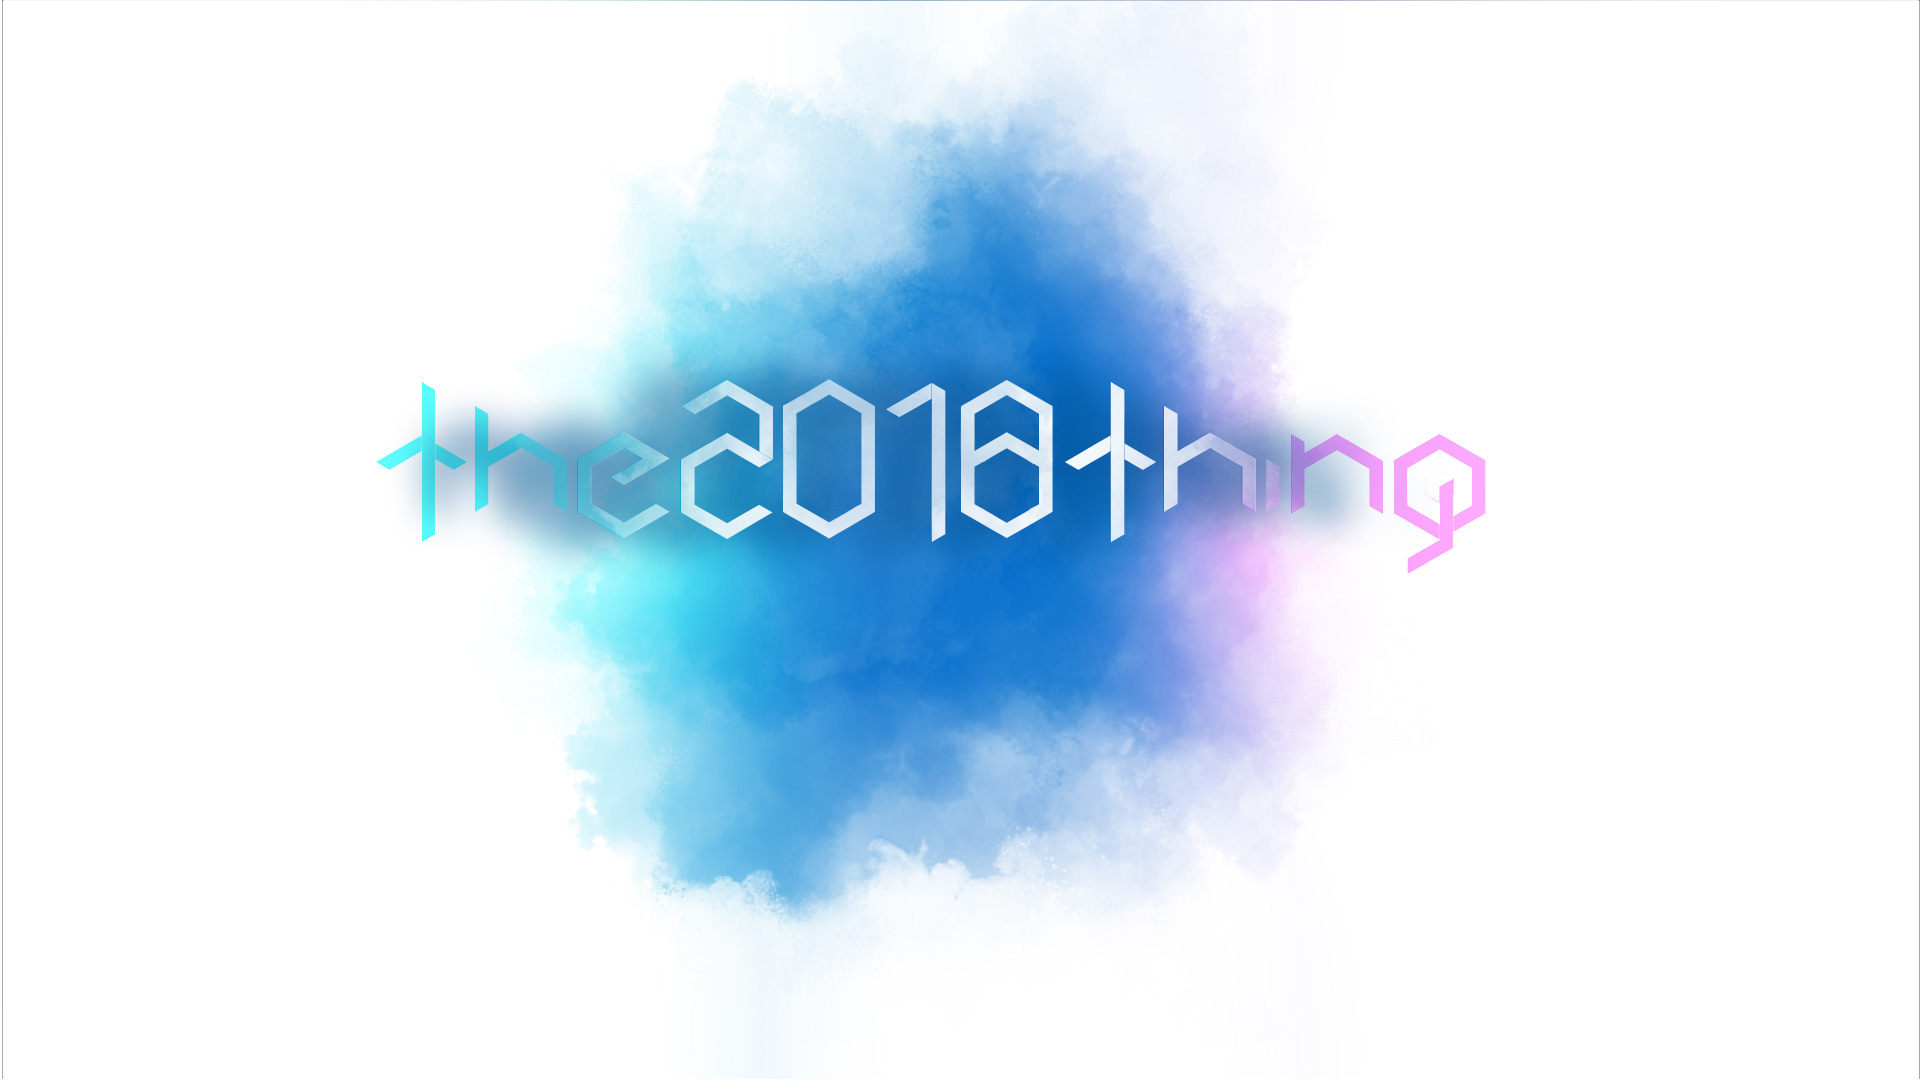 The2018Thing